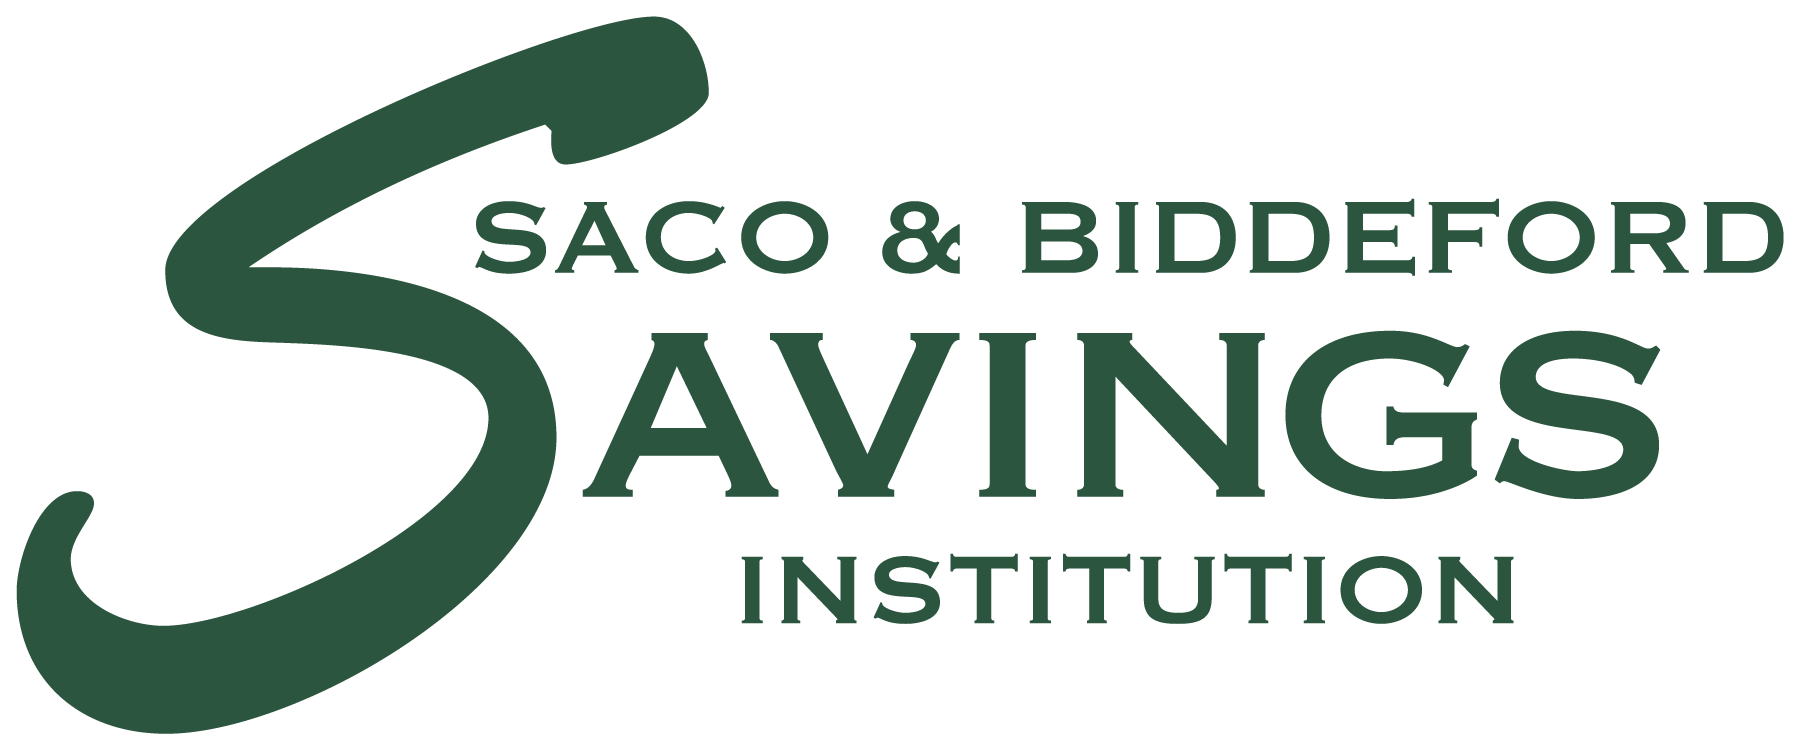 Saco Biddeford Savings